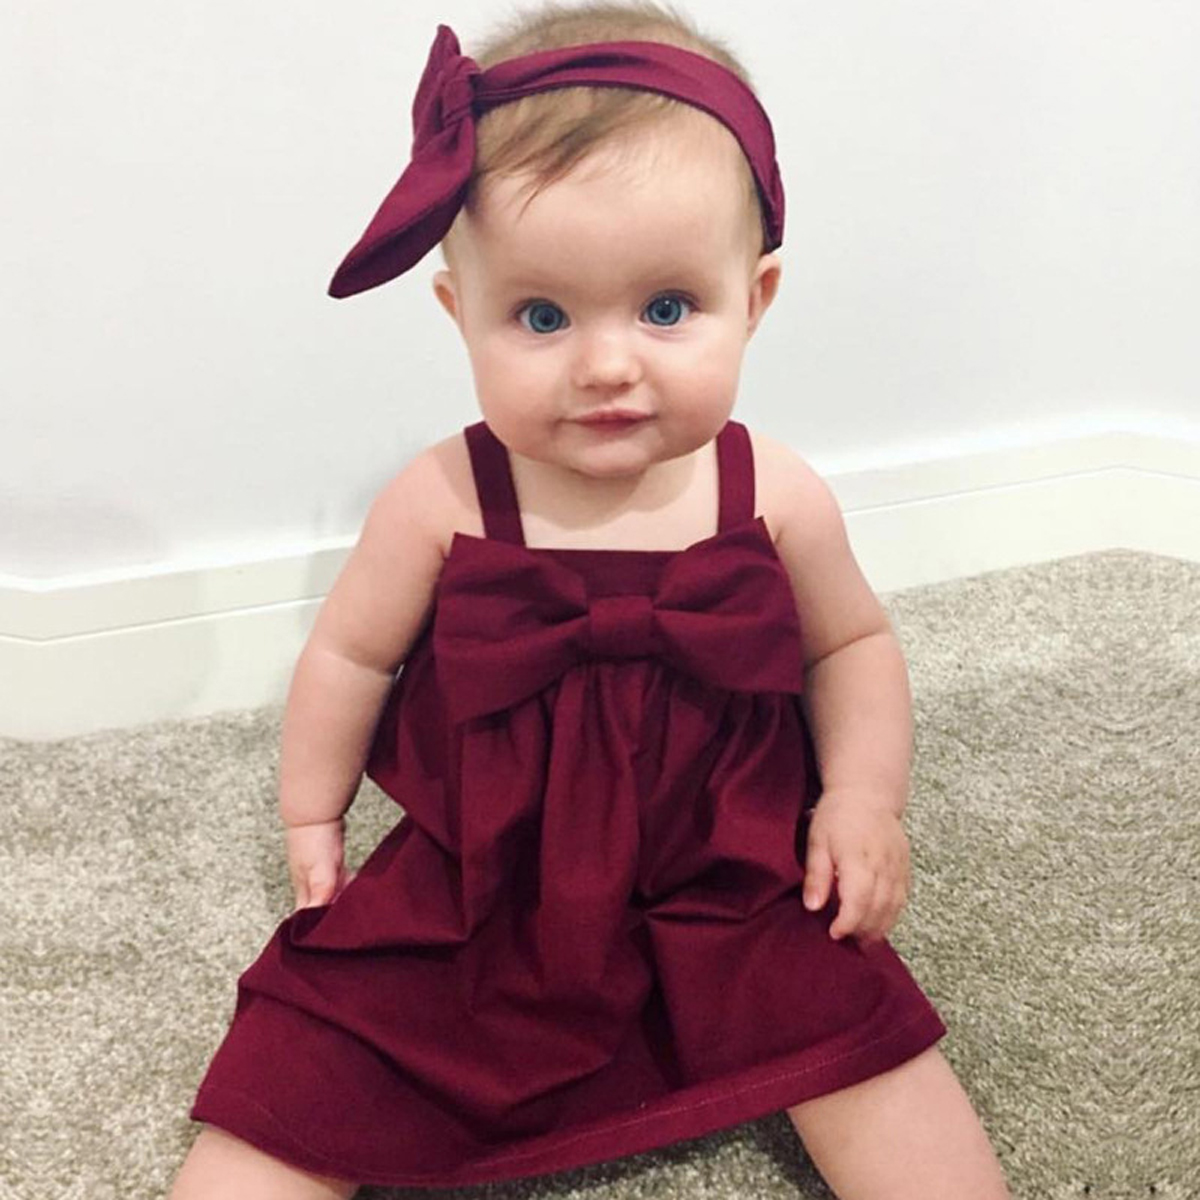 Dresses Baby Girl Dress Clothes Summer Infant Dresses Flower Bow Kids Fashion Cotton Solid Red Newborn Toddler Princess Clothes summer baby girls dress ice cream print 100% cotton toddler girl clothing cartoon 2018 fashion kids girl clothes infant dresses